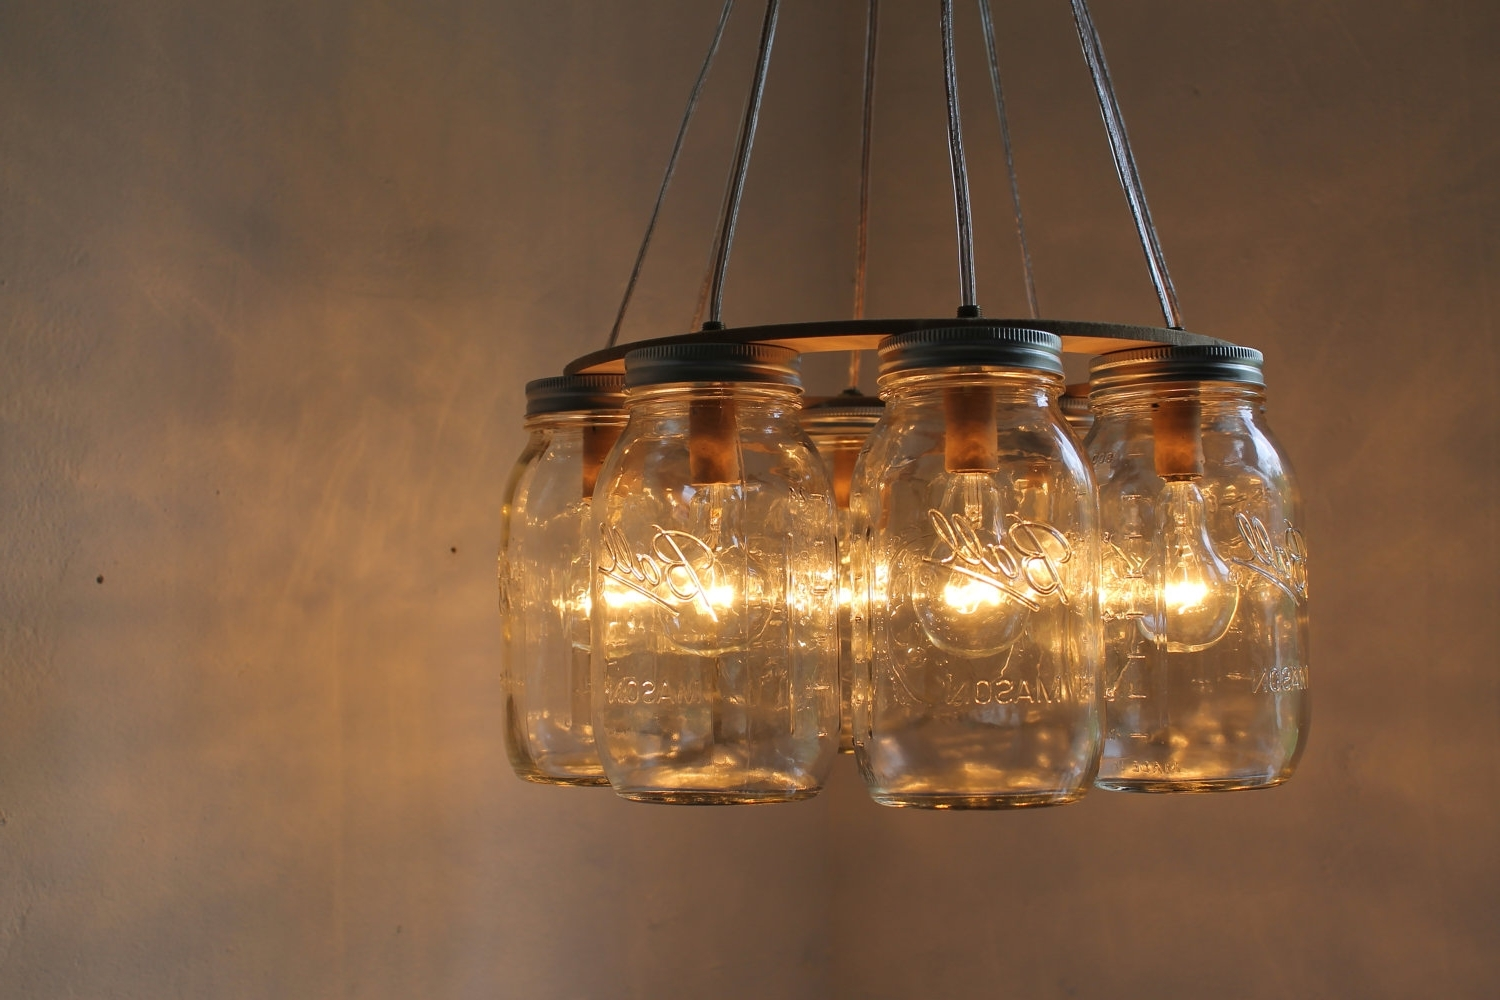 Preferred Small Rustic Lighting Fixtures : Rustic Lighting Fixtures Ideas For Small Rustic Chandeliers (View 5 of 20)